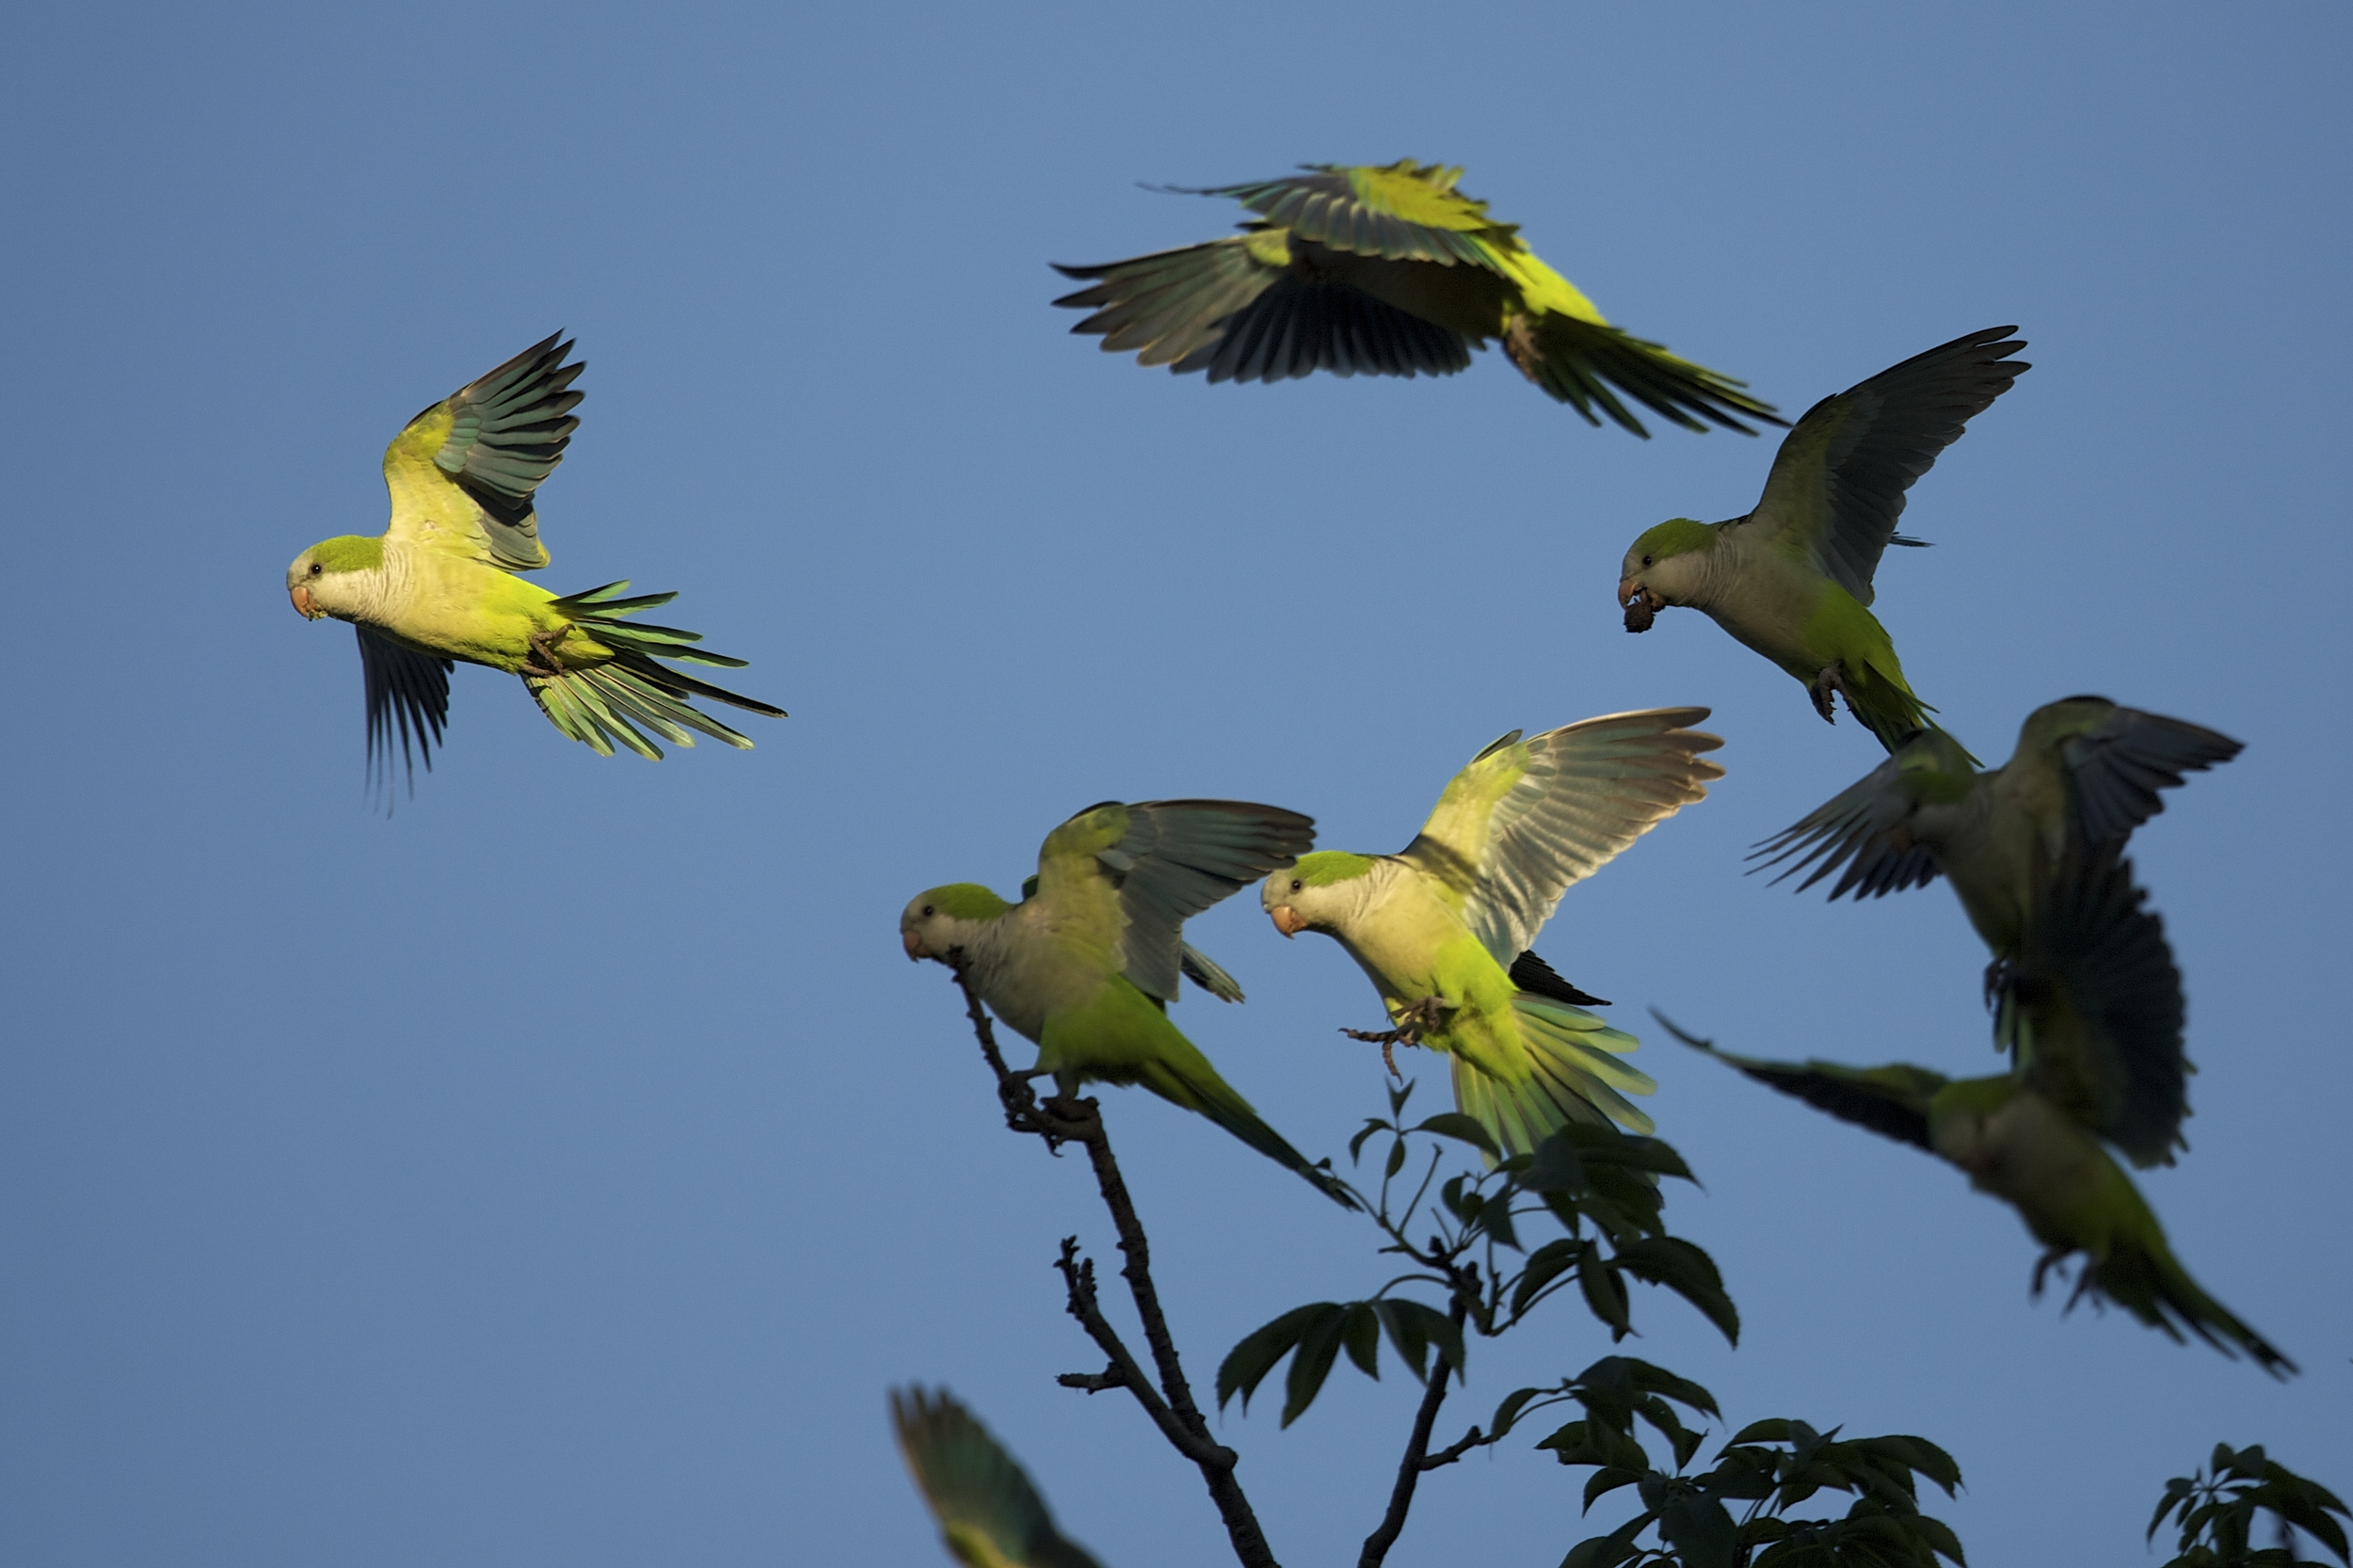 parrots on a tree